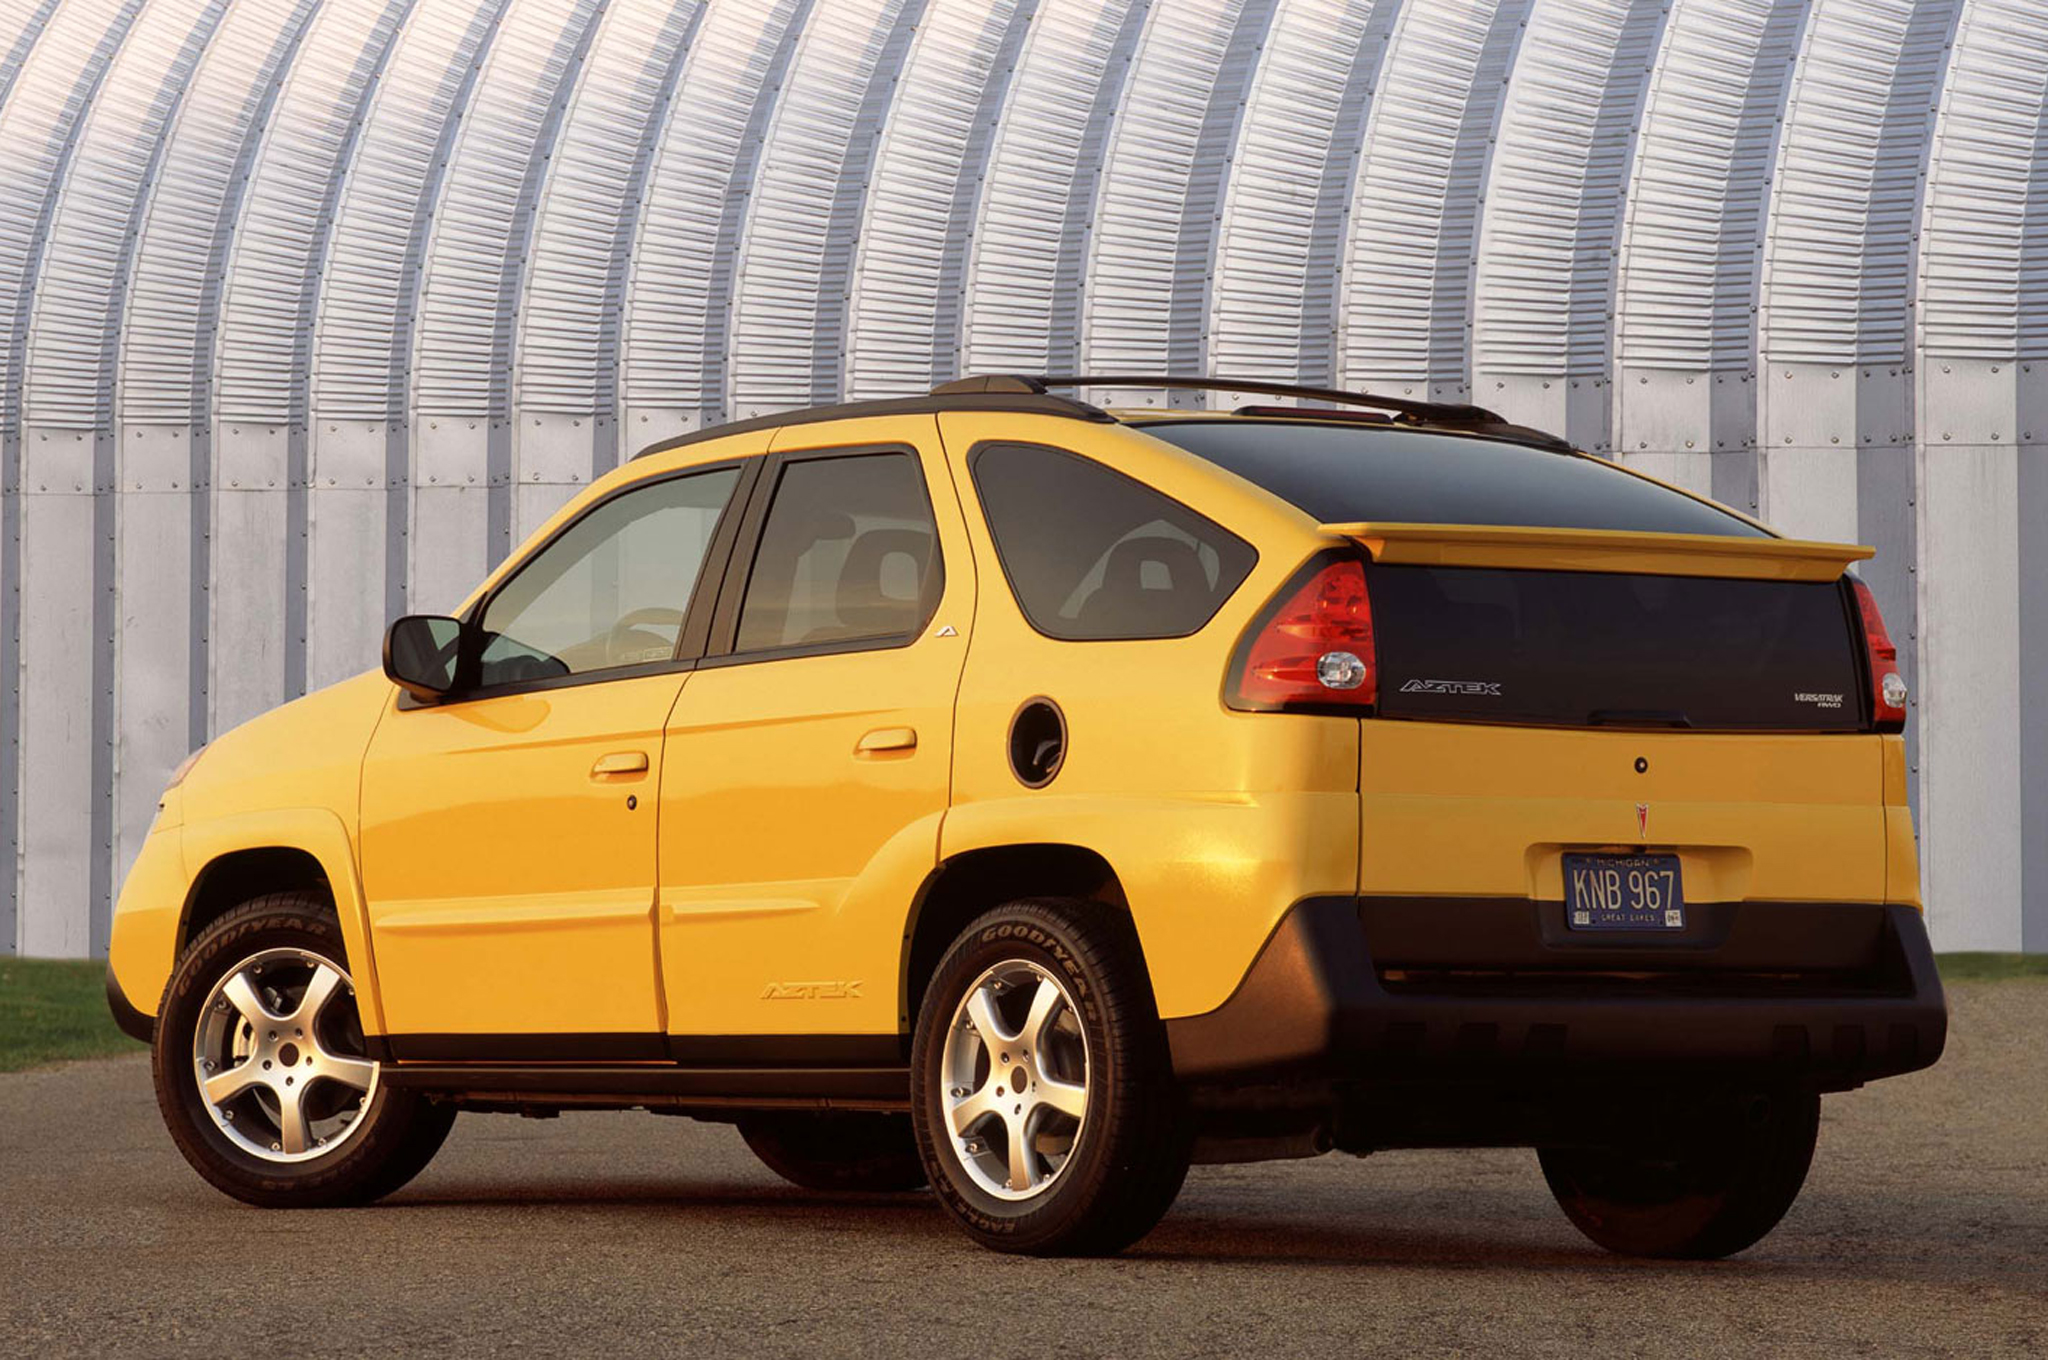 2017 Pontiac Aztek Photo 2